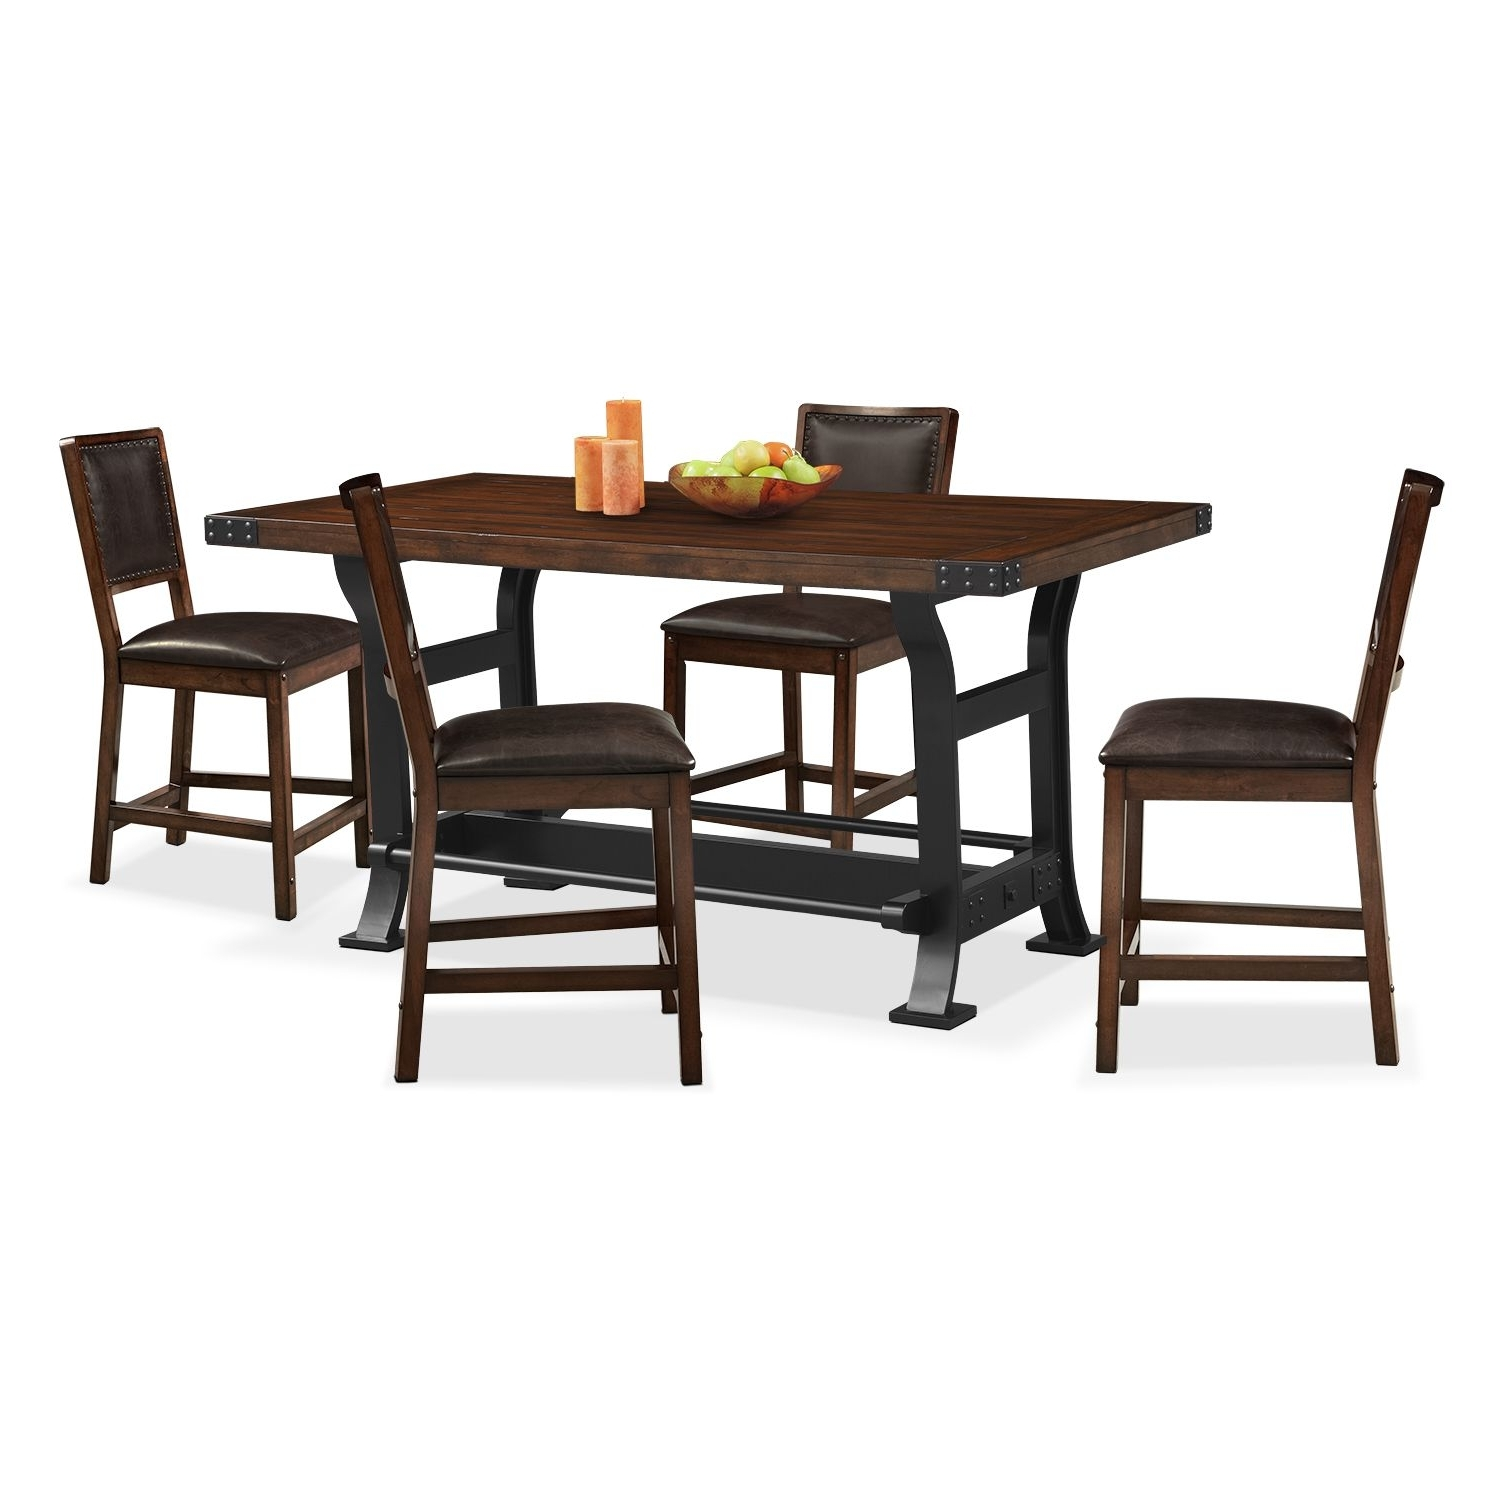 Gavin 7 Piece Dining Sets With Clint Side Chairs With Regard To Fashionable Hampton Counter Height Dining Table And 6 Upholstered Stoo (View 8 of 25)